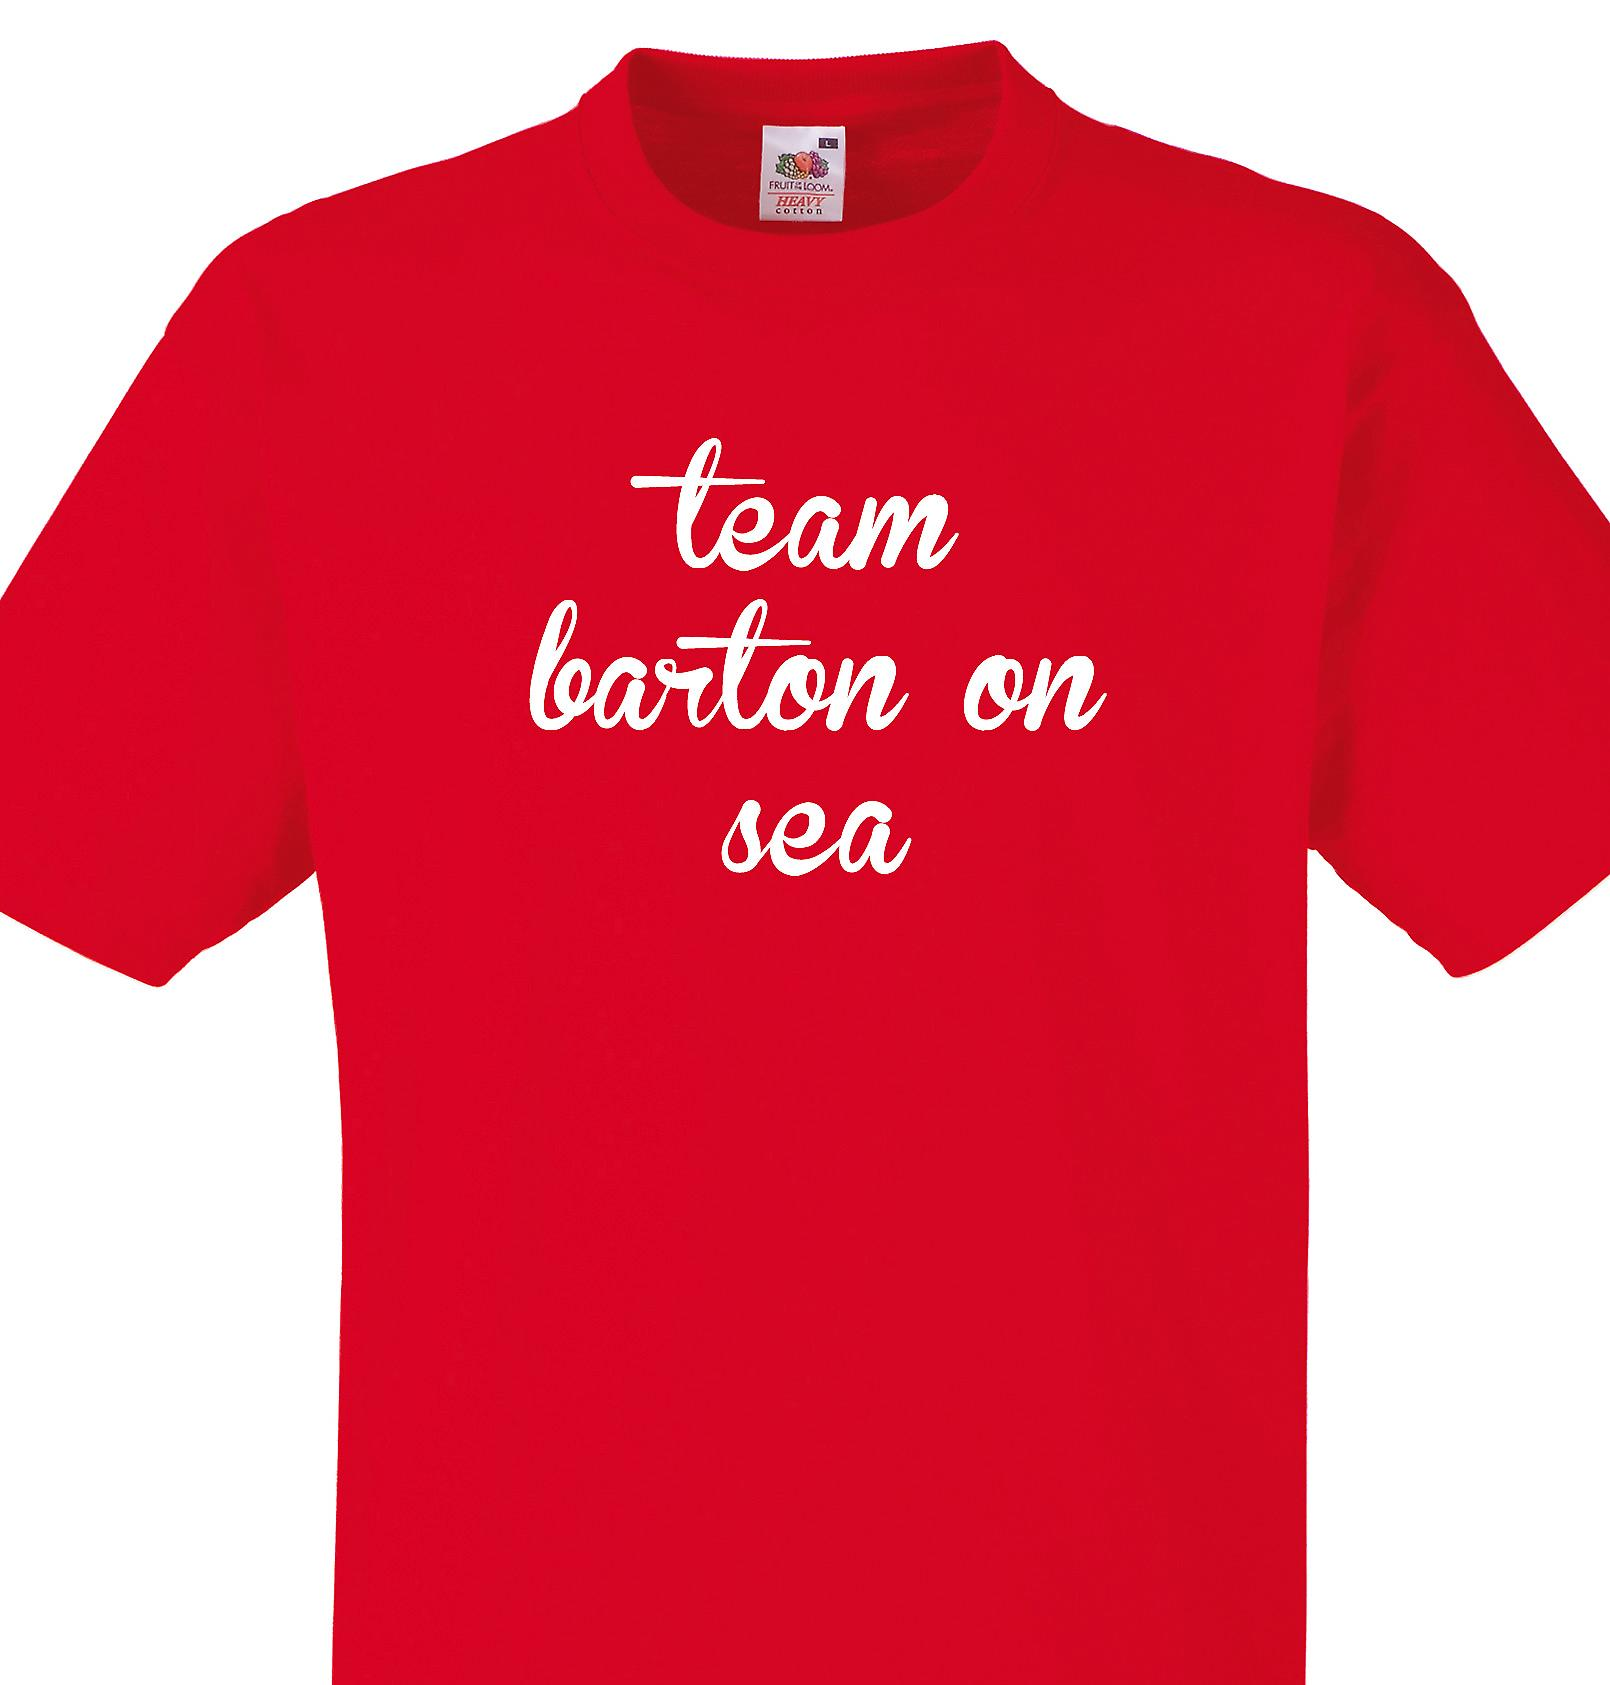 Team Barton on sea Red T shirt